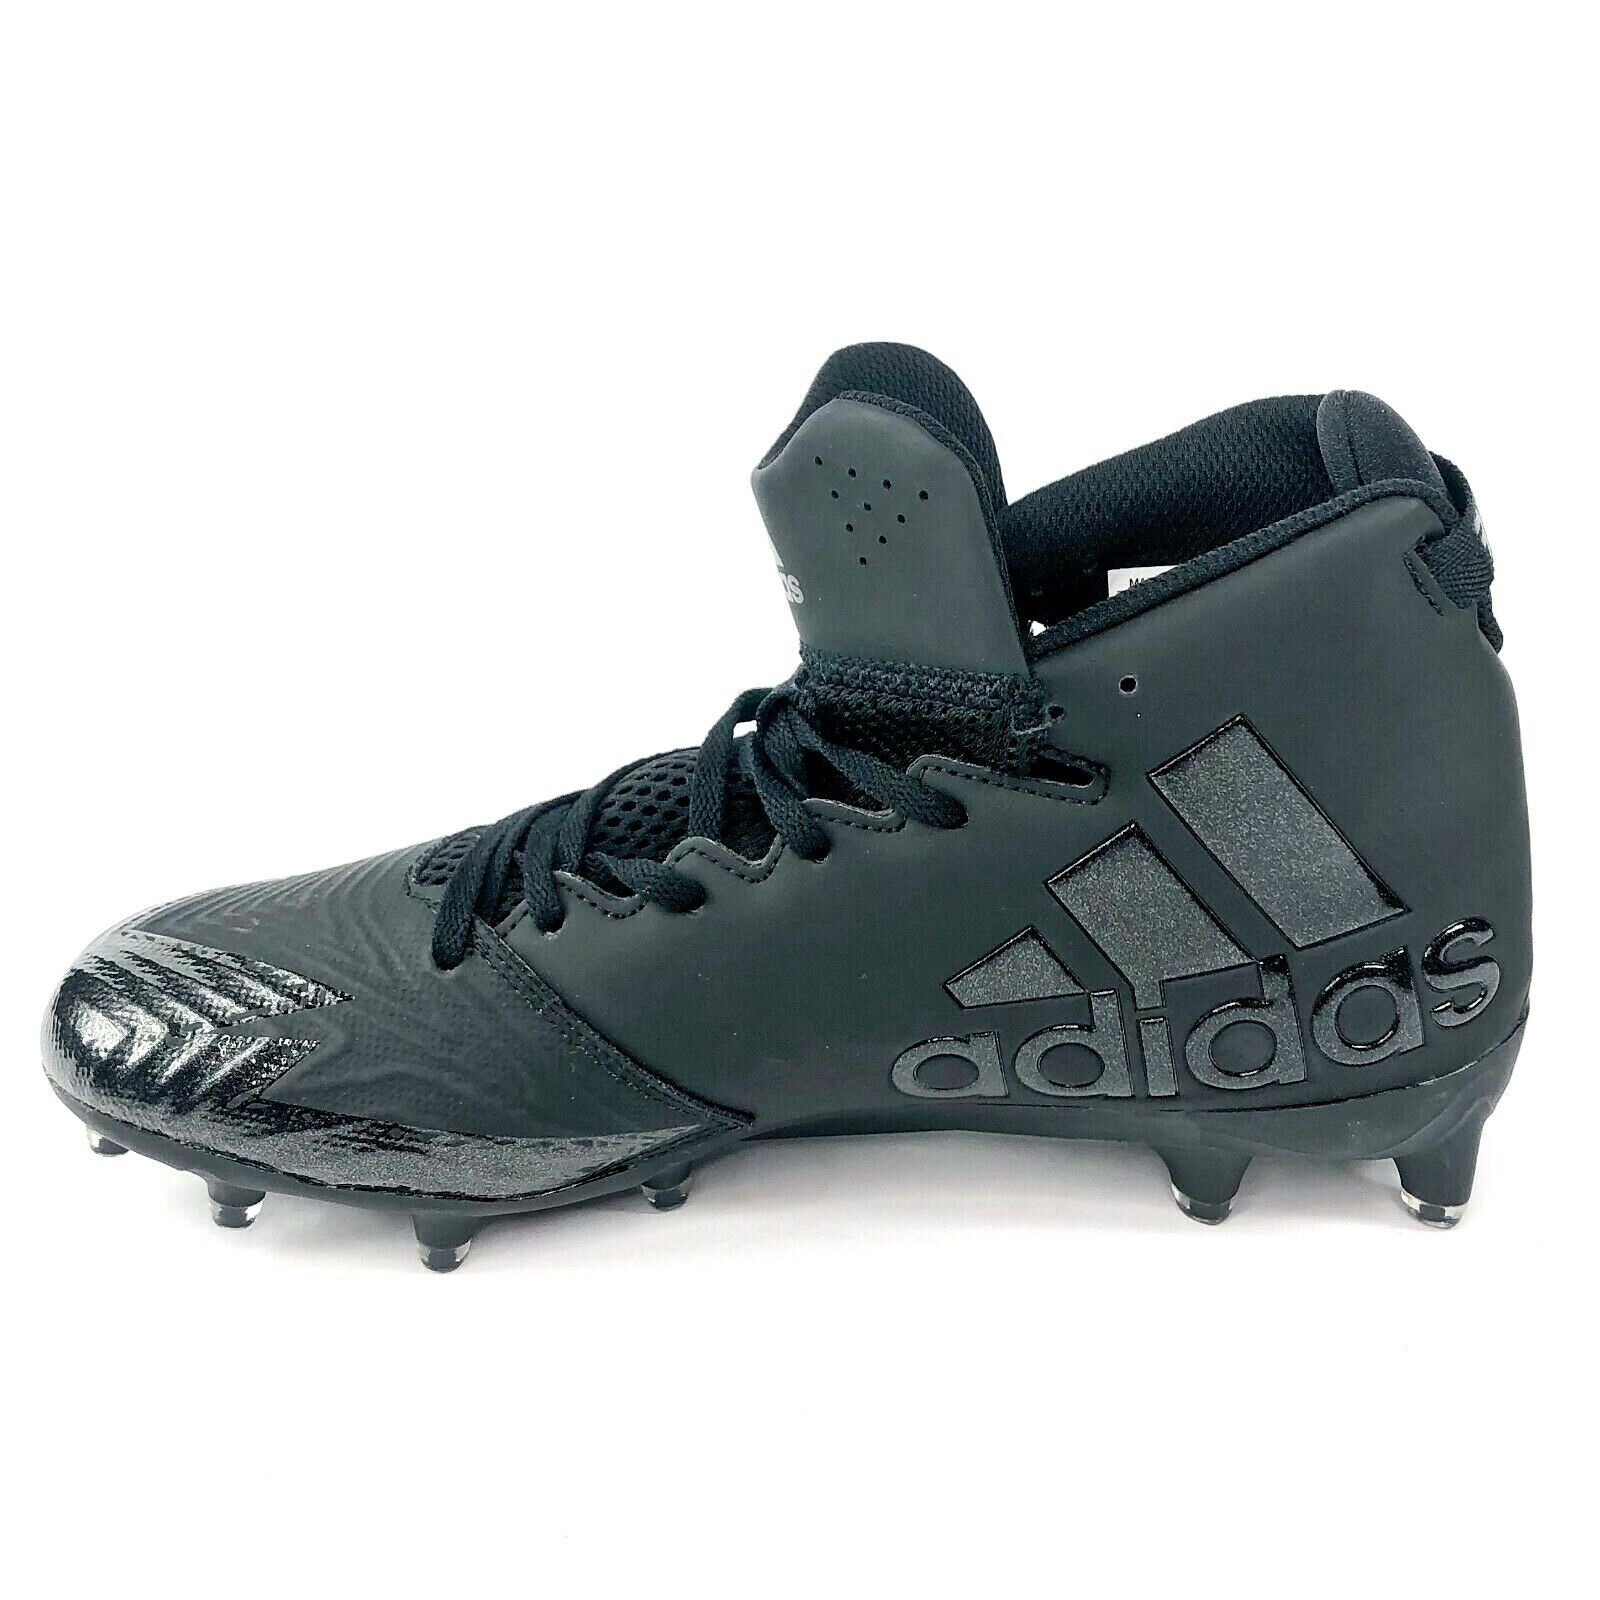 Adidas Freak X Carbon Mid Senior Football Cleats BW0866 Mens Size 9.5